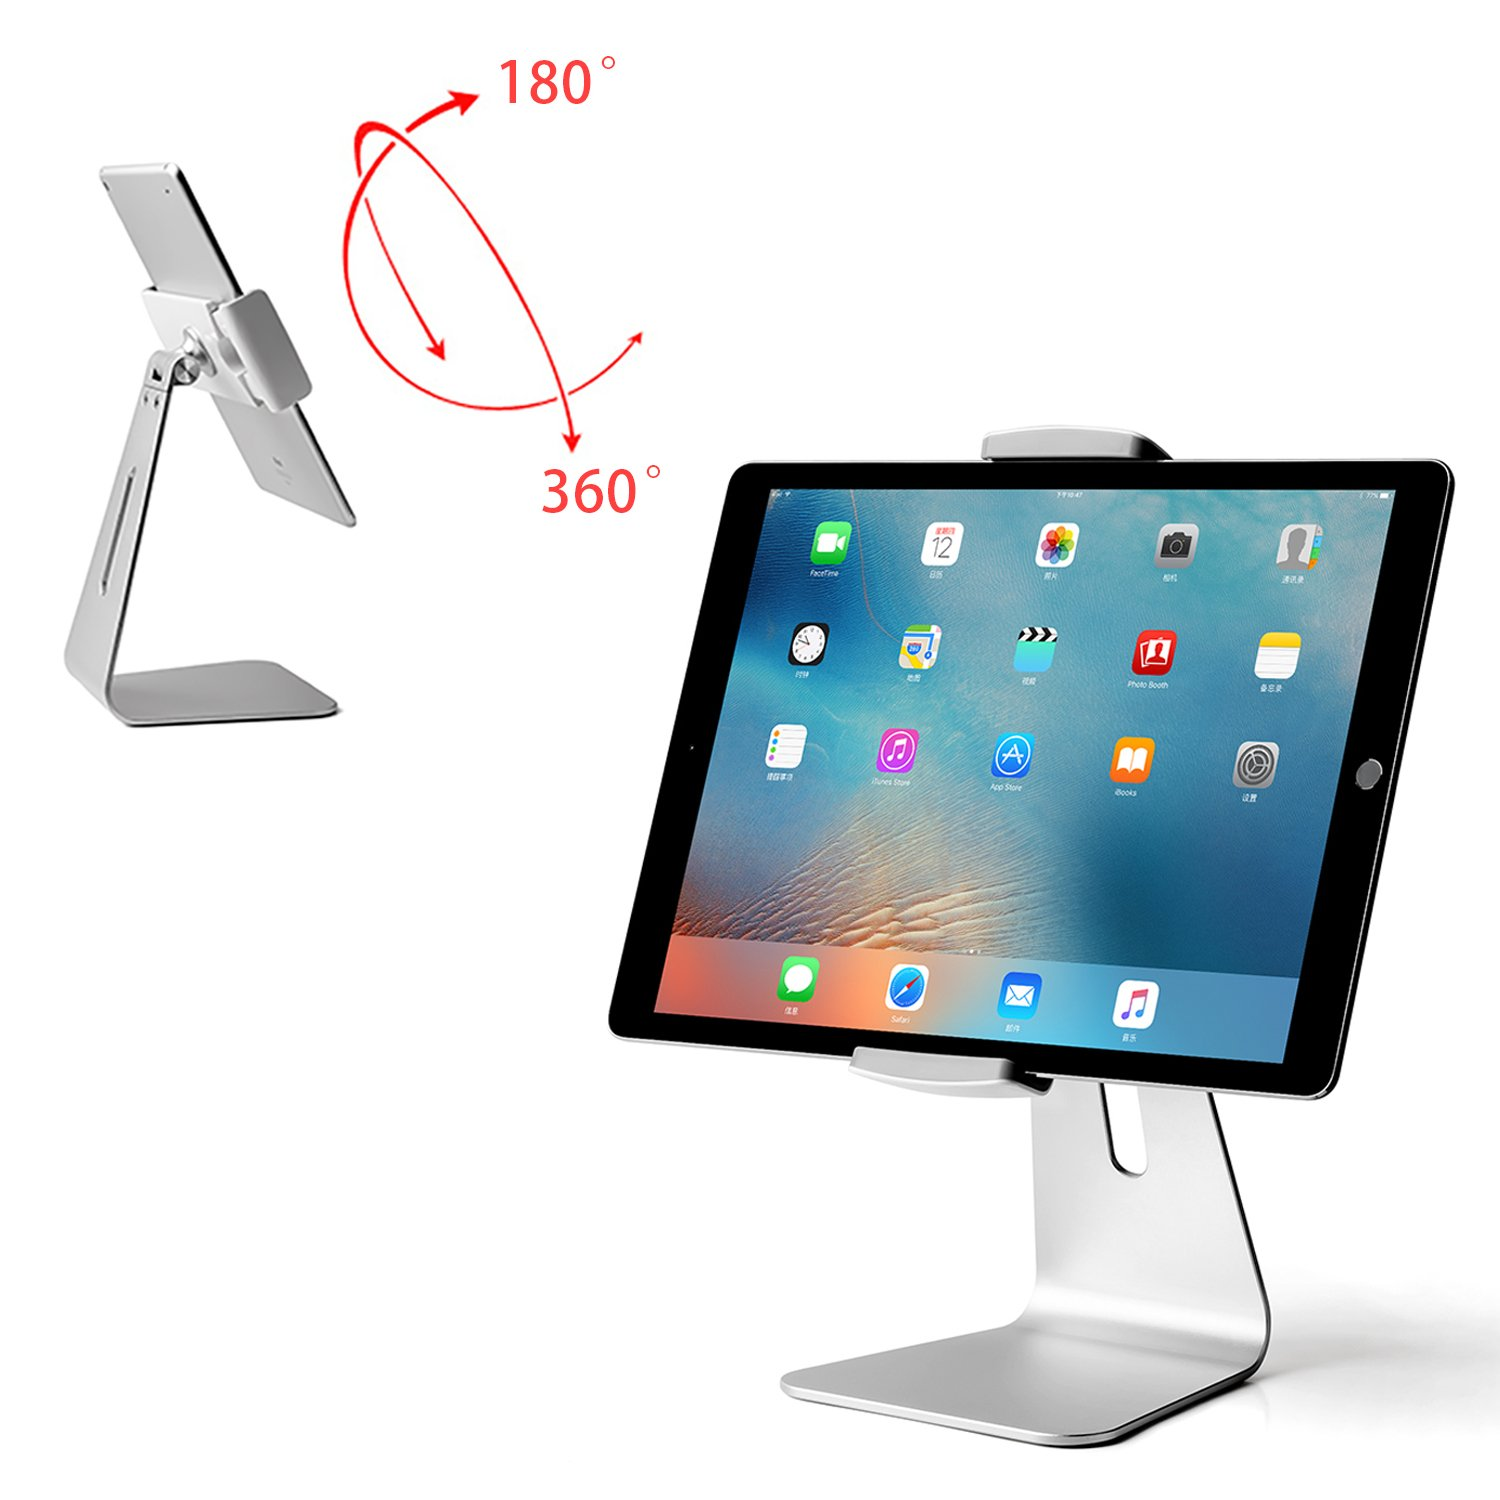 Viozon ipad Pro Stand, Tablet Stands 360° Rotatable Aluminum Alloy Desktop Mount Stand for Ipad Pro Ipad Air Ipad Mini Surface and Surface Pro by Viozon (Image #1)